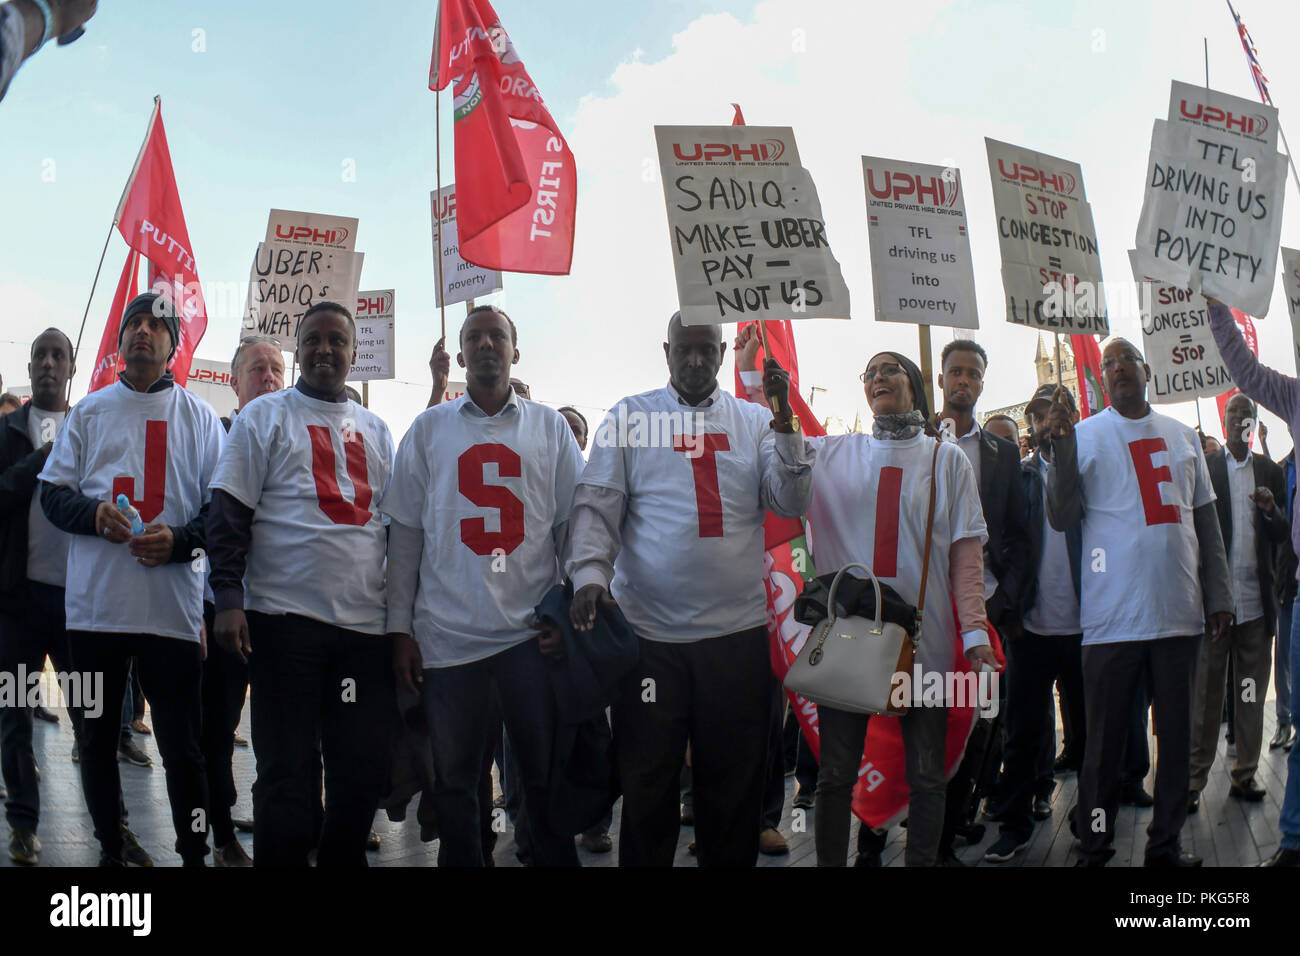 City Hall, London, UK. 13th Sep 2018. The United Private Hire Drivers and IWGB - Independent Workers Union of Great Britain demonstration Say NO to Mayor of London and TfL plan to make minicab drivers pay £11.50 per day in congestion charging at City Hall on 13 September 2018, London, UK. Credit: Picture Capital/Alamy Live News - Stock Image